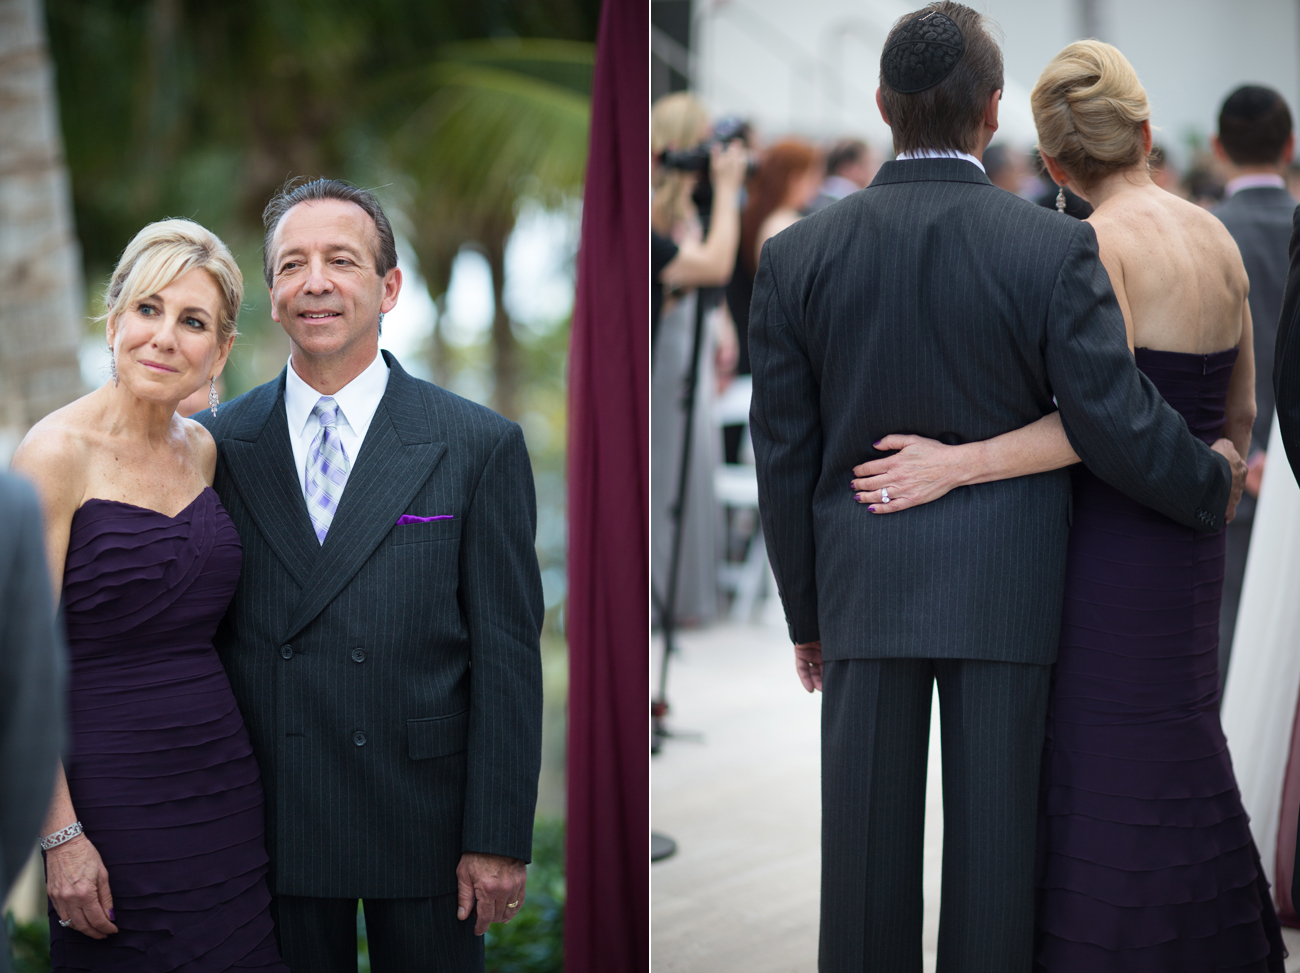 Best candid jewish wedding photographer in Florida